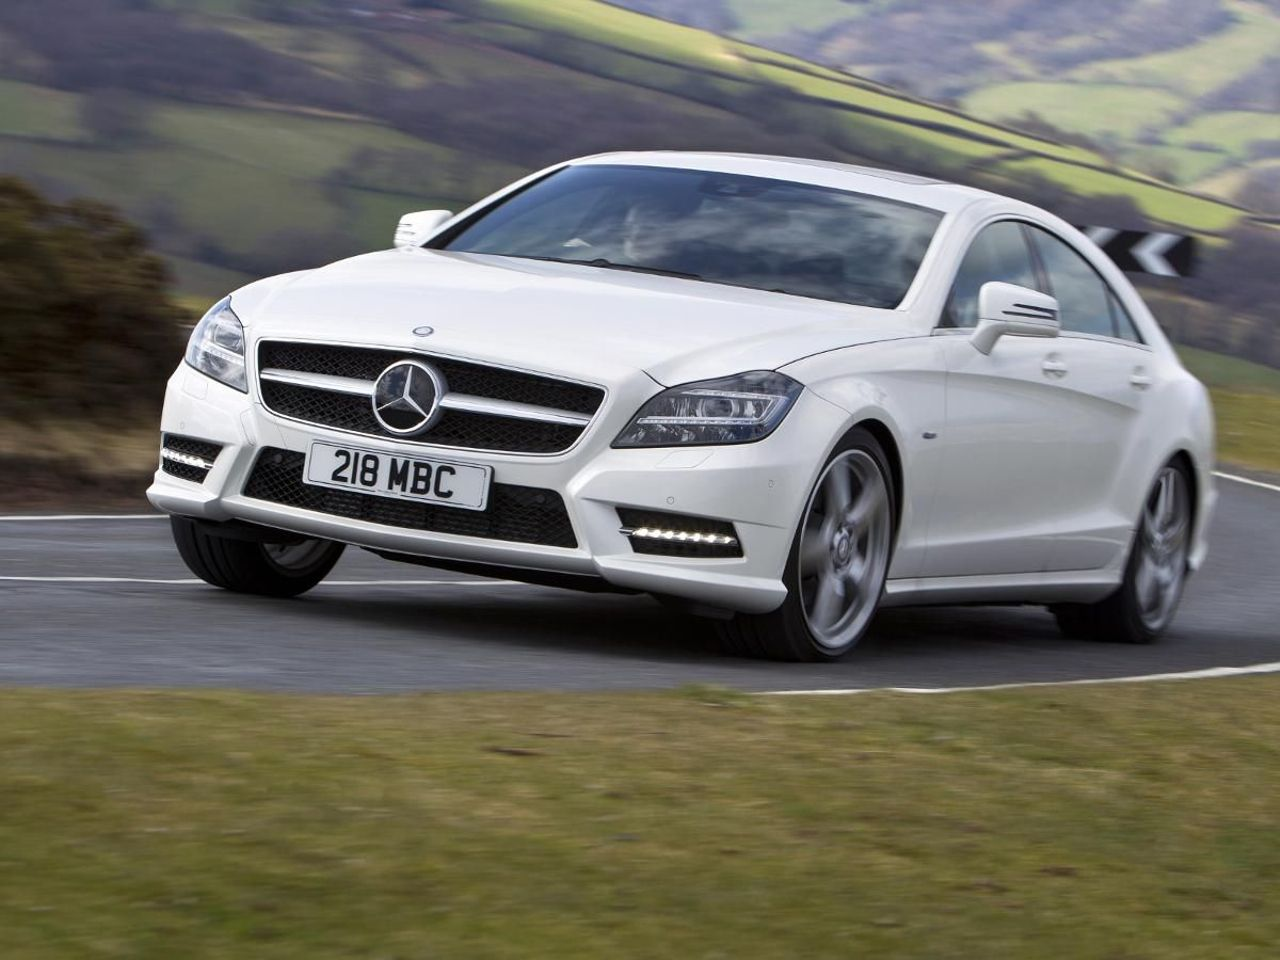 Mercedes benz cls coupe 2014 review auto trader uk for Auto trader mercedes benz